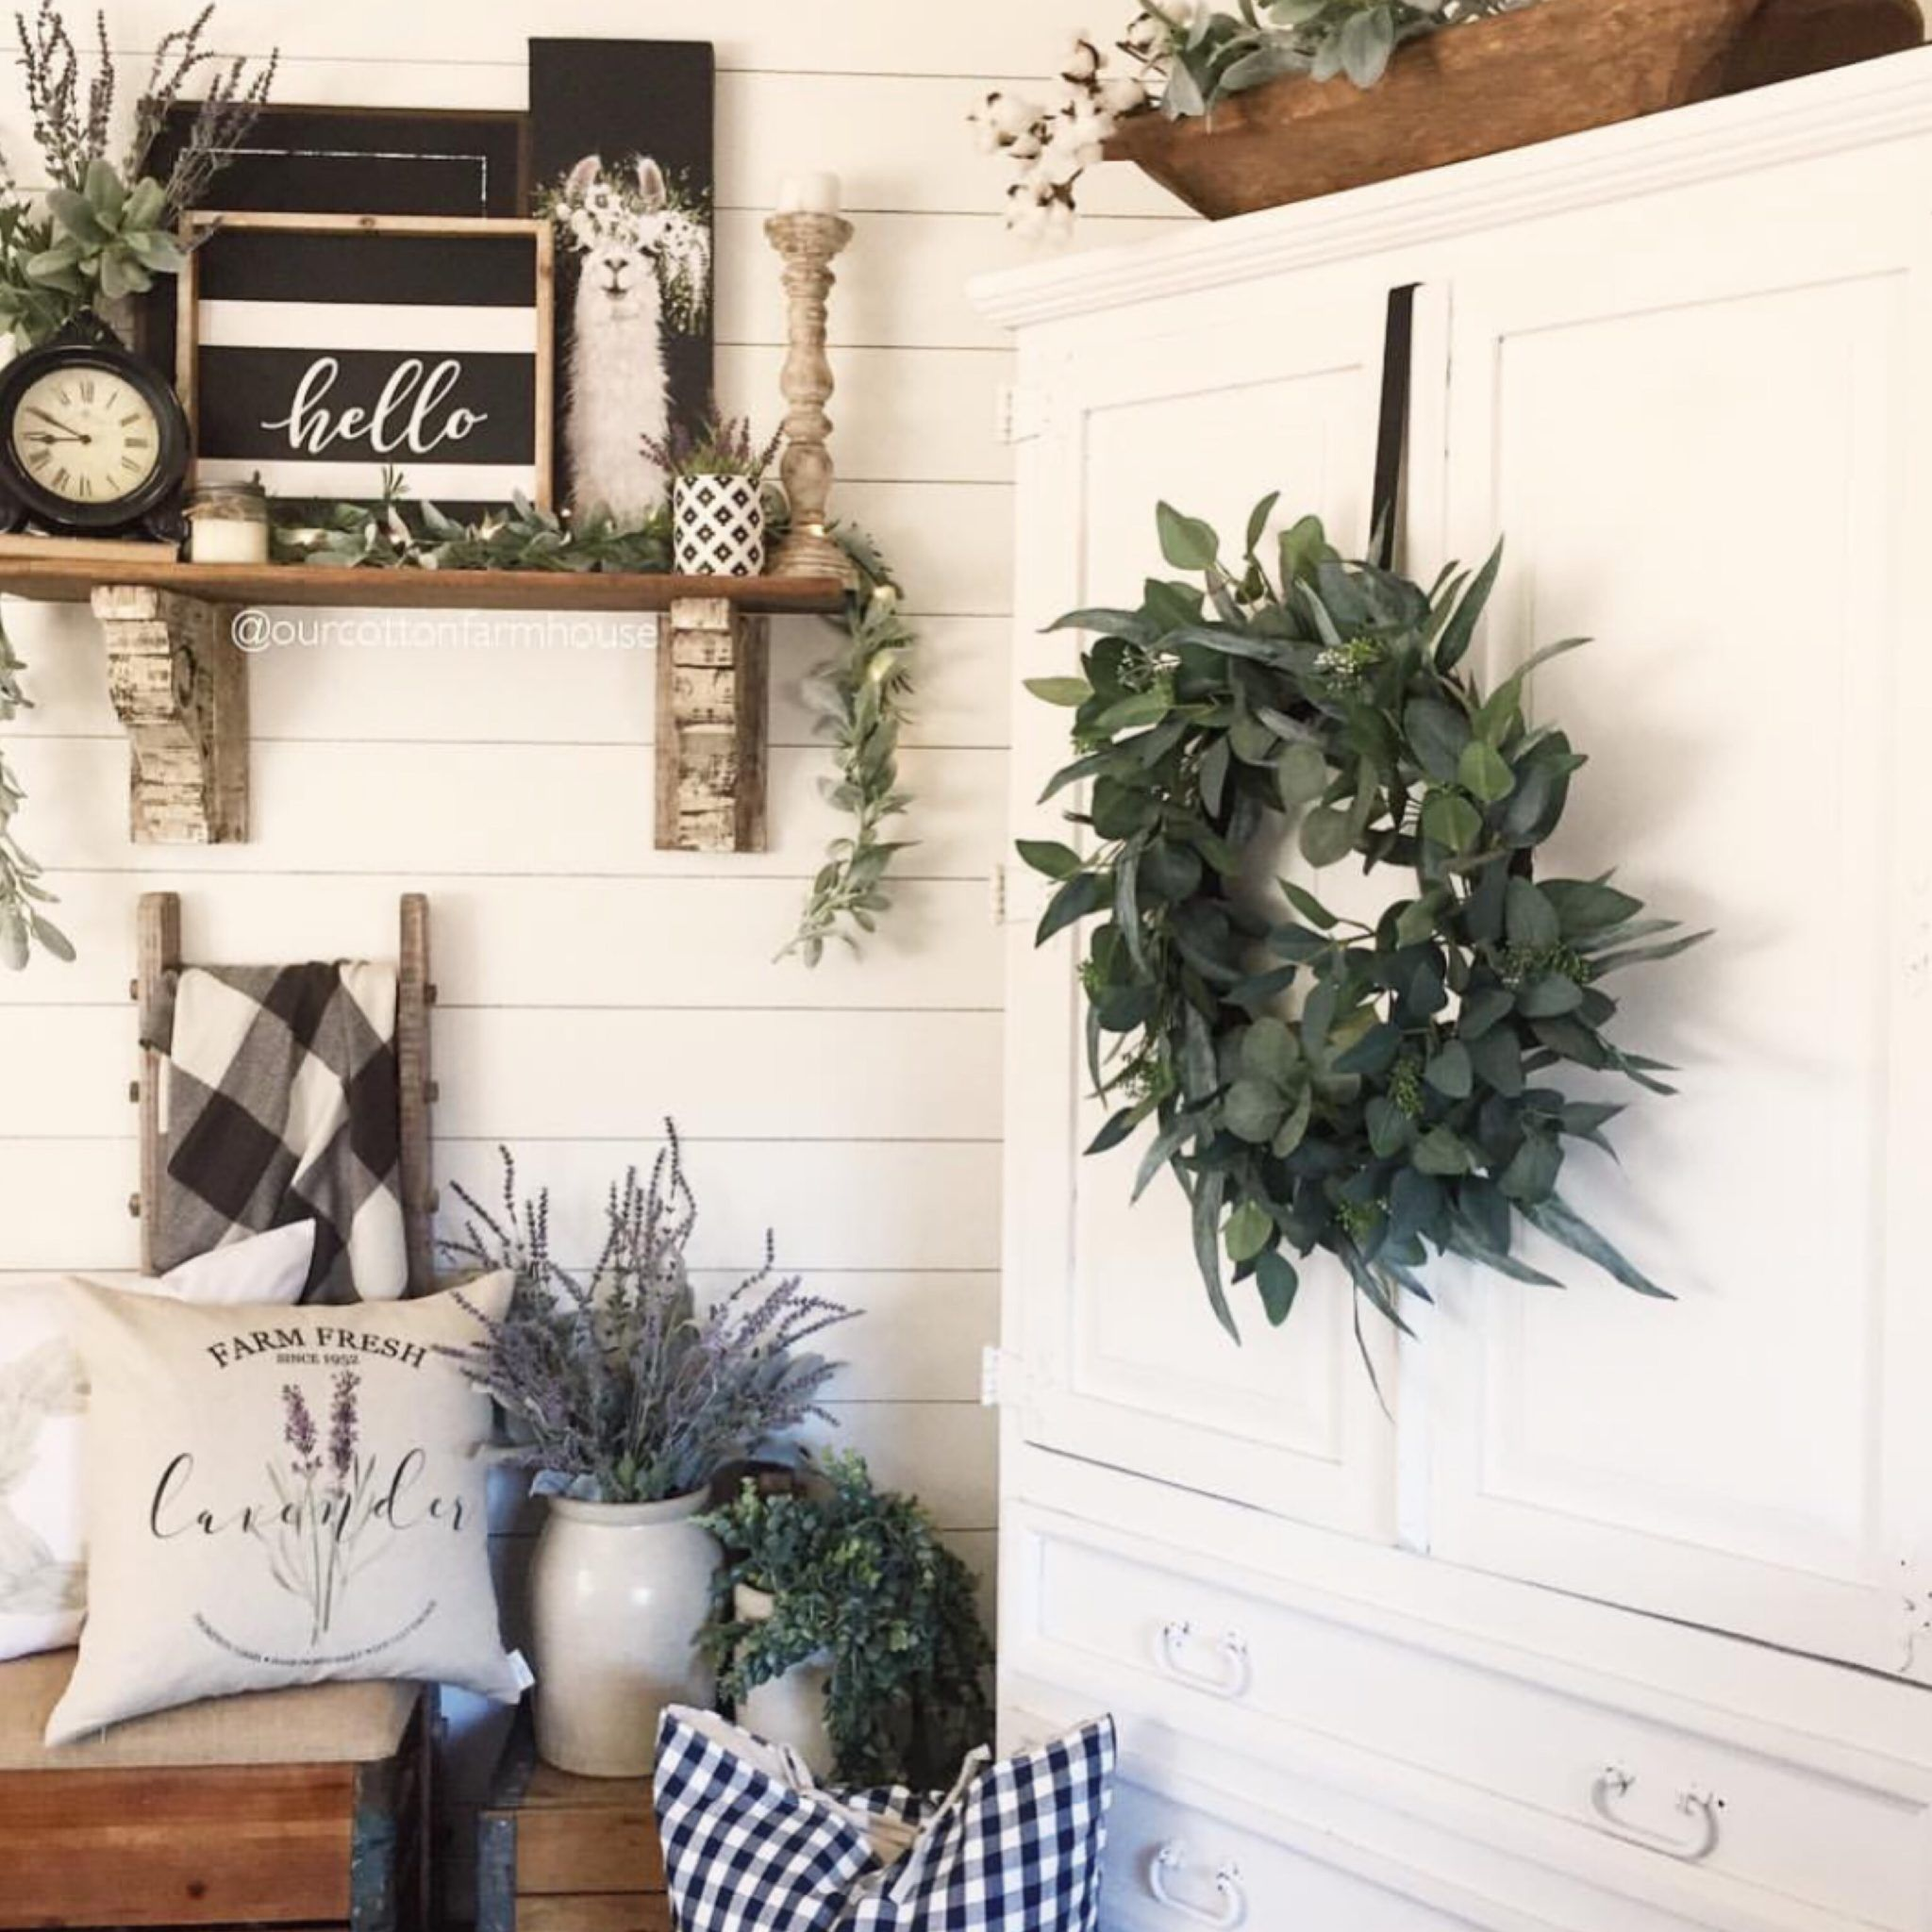 20 of the BEST Home Decor Blogs that will inspire you